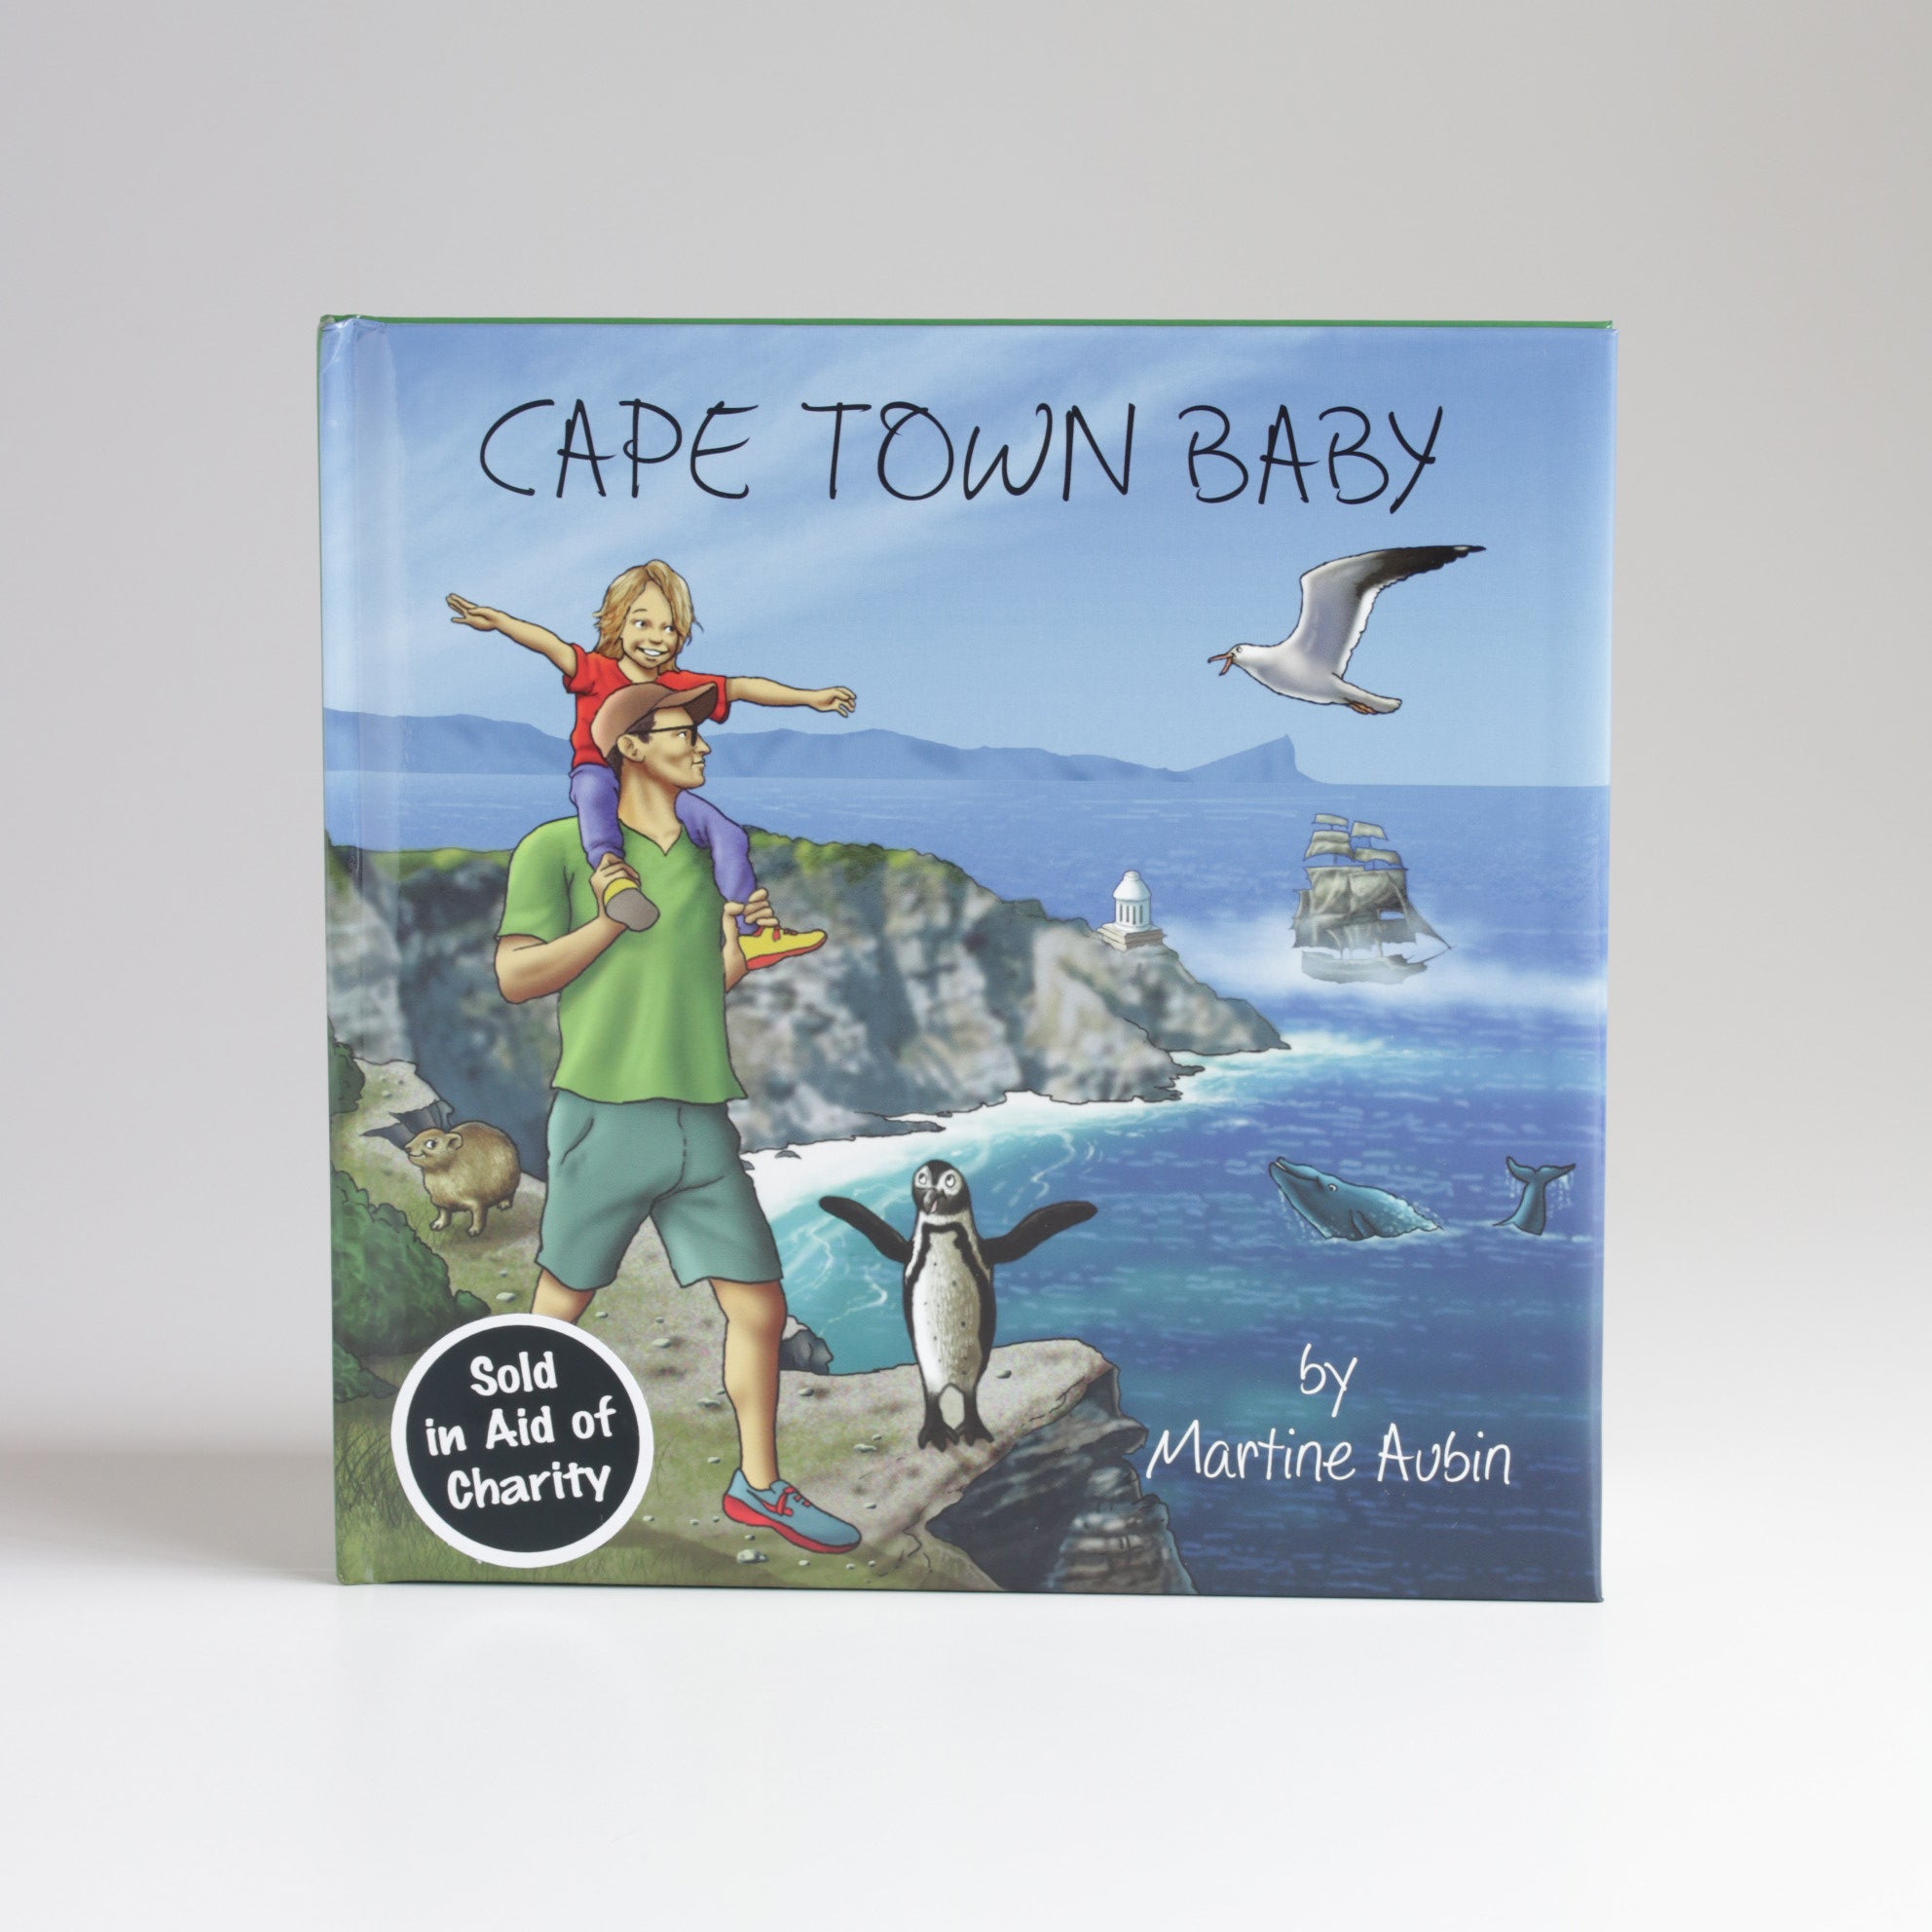 The Cape Town Baby Book